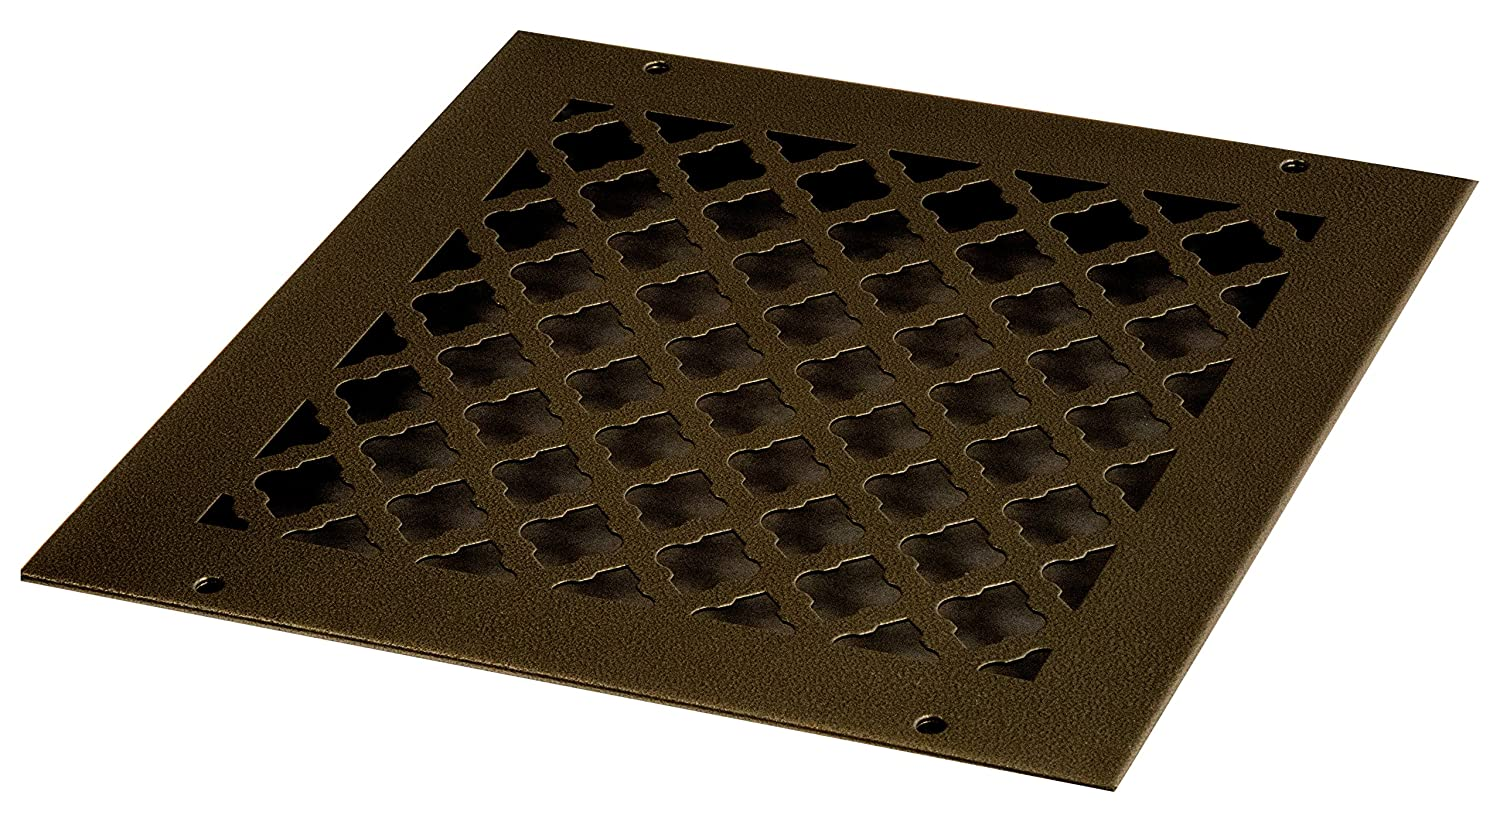 SteelCrest BTU10X10RORBH Bronze Series Designer Wall/Ceiling Vent Cover, with Mounting Screws, Oil-Rubbed Bronze